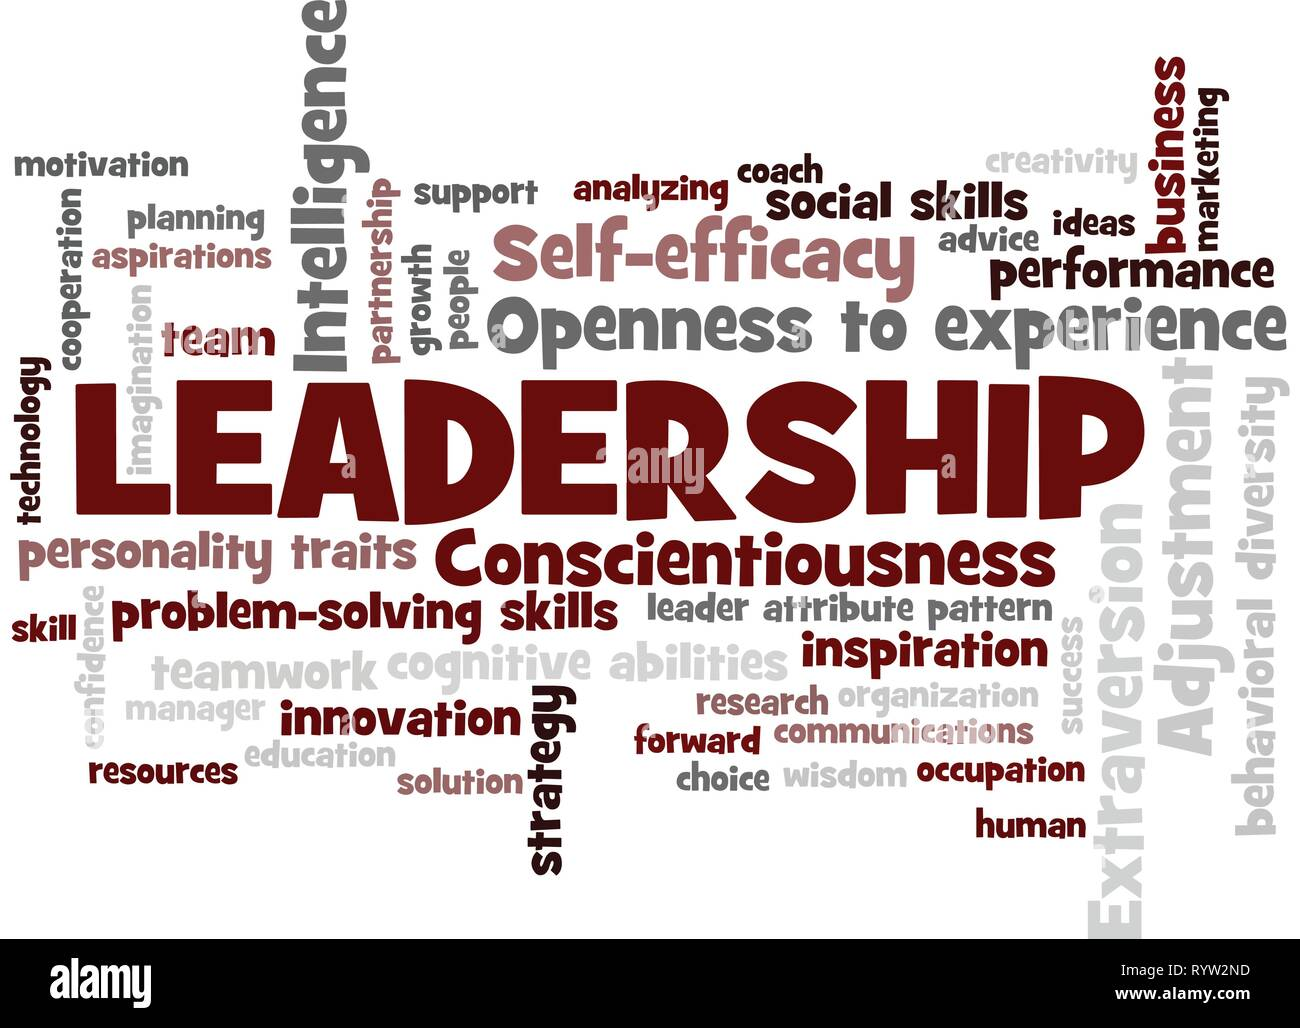 leadership Word Tag Cloud, shows words related to leadership and leader attribute pattern concept, vector ESP10 - Stock Vector